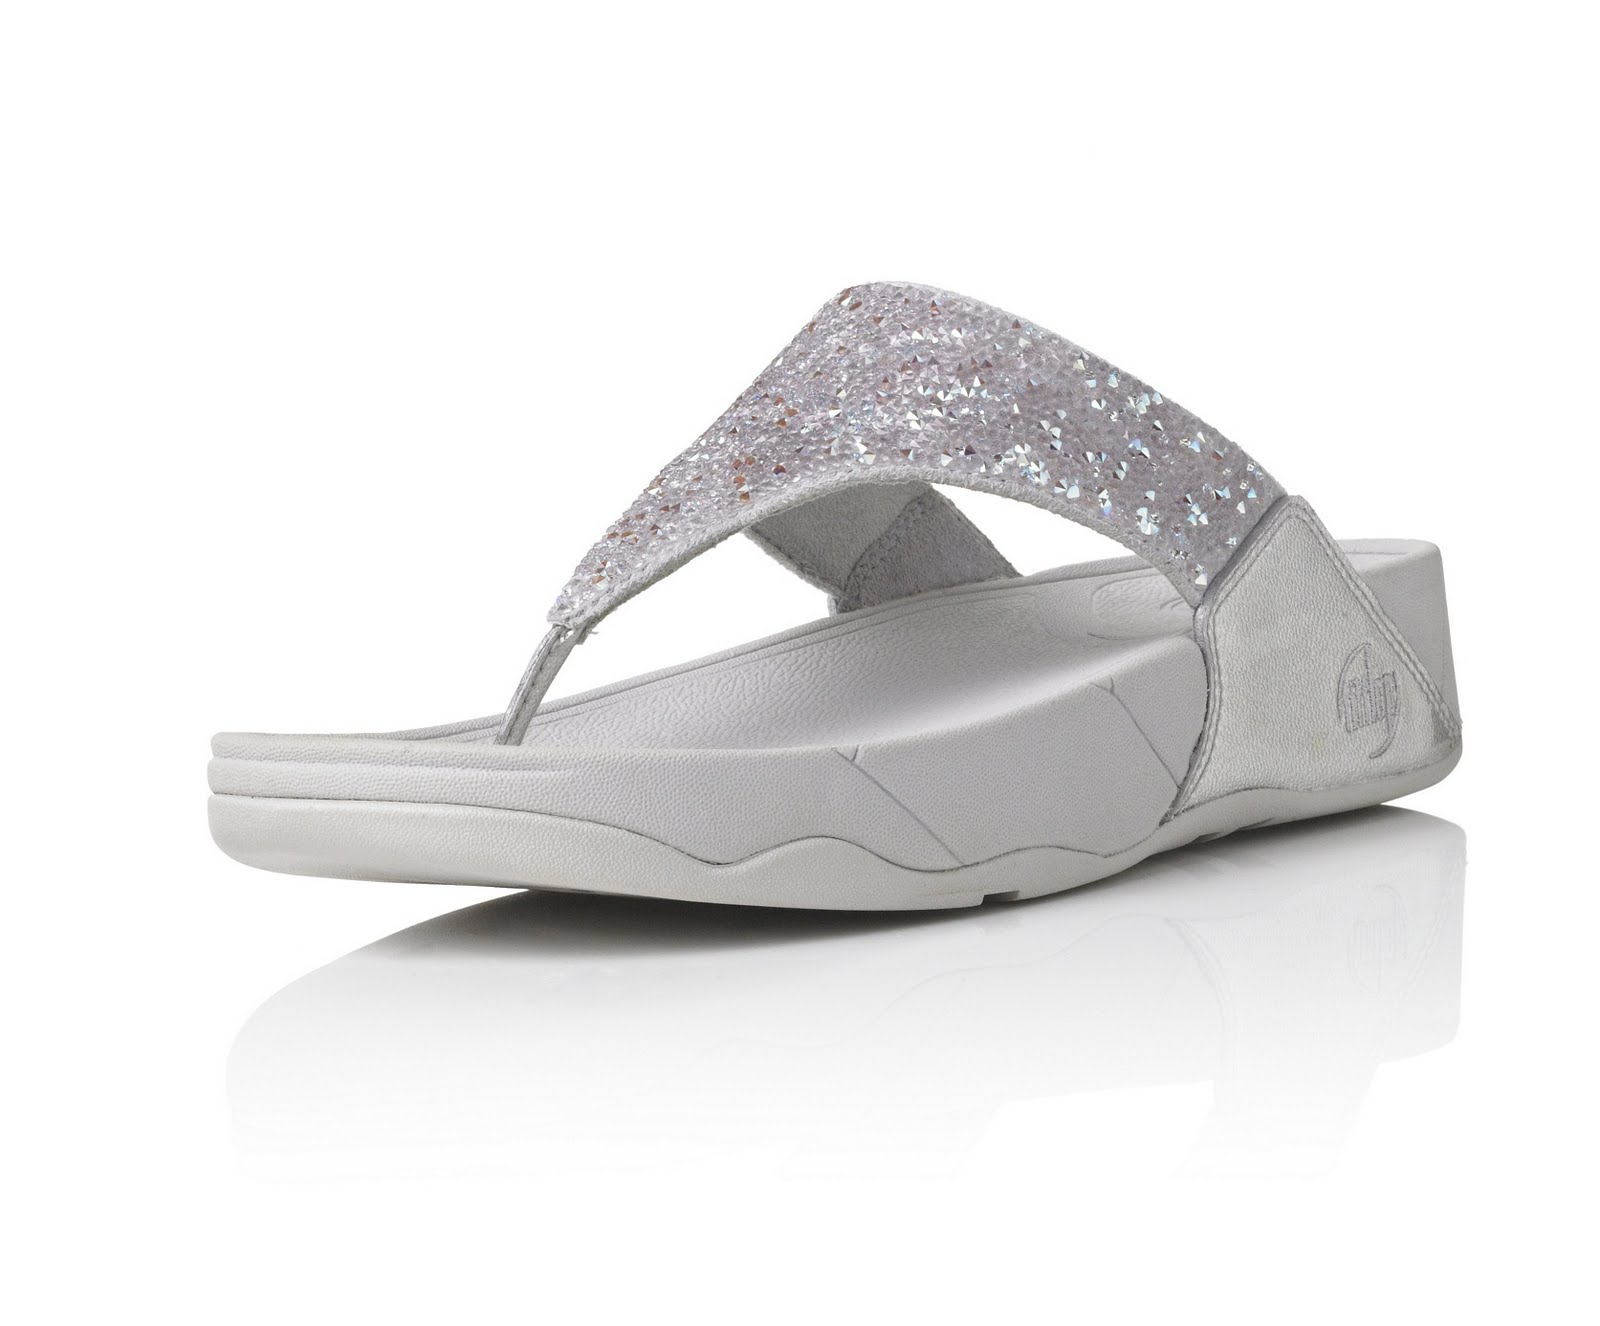 fitflop limited edition rock chic sandals ice white